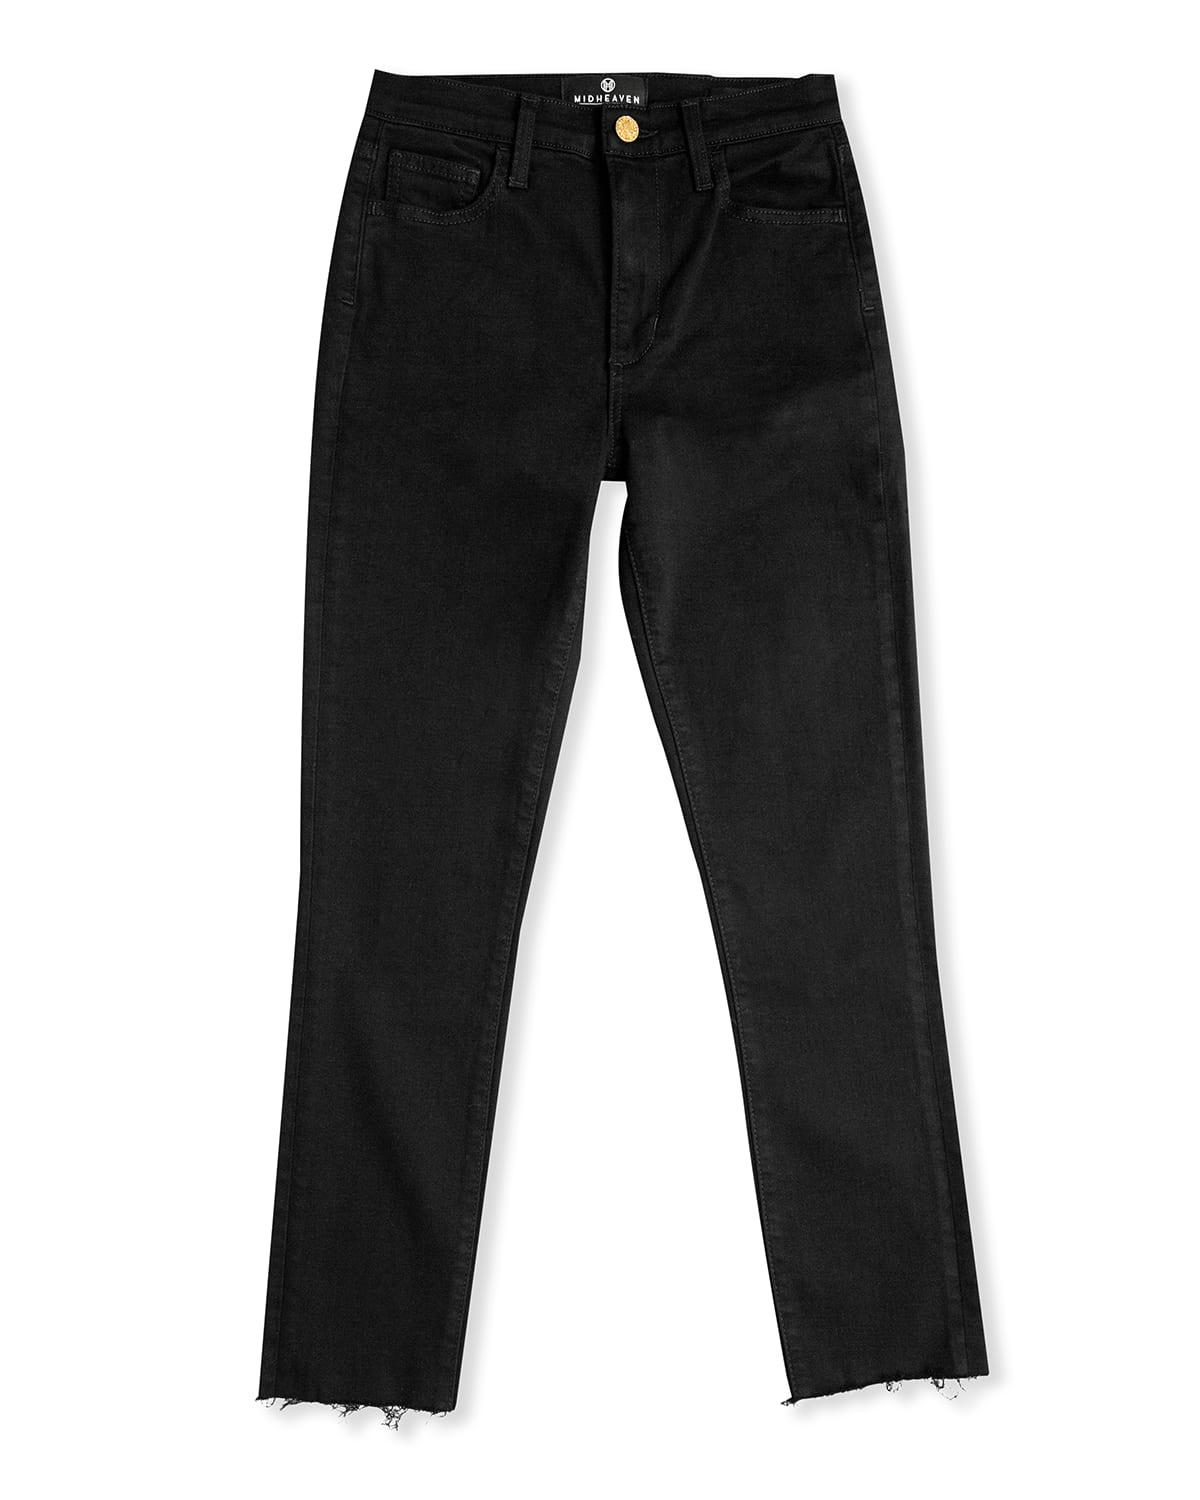 Reign Skinny Jeans with Chewed Hem